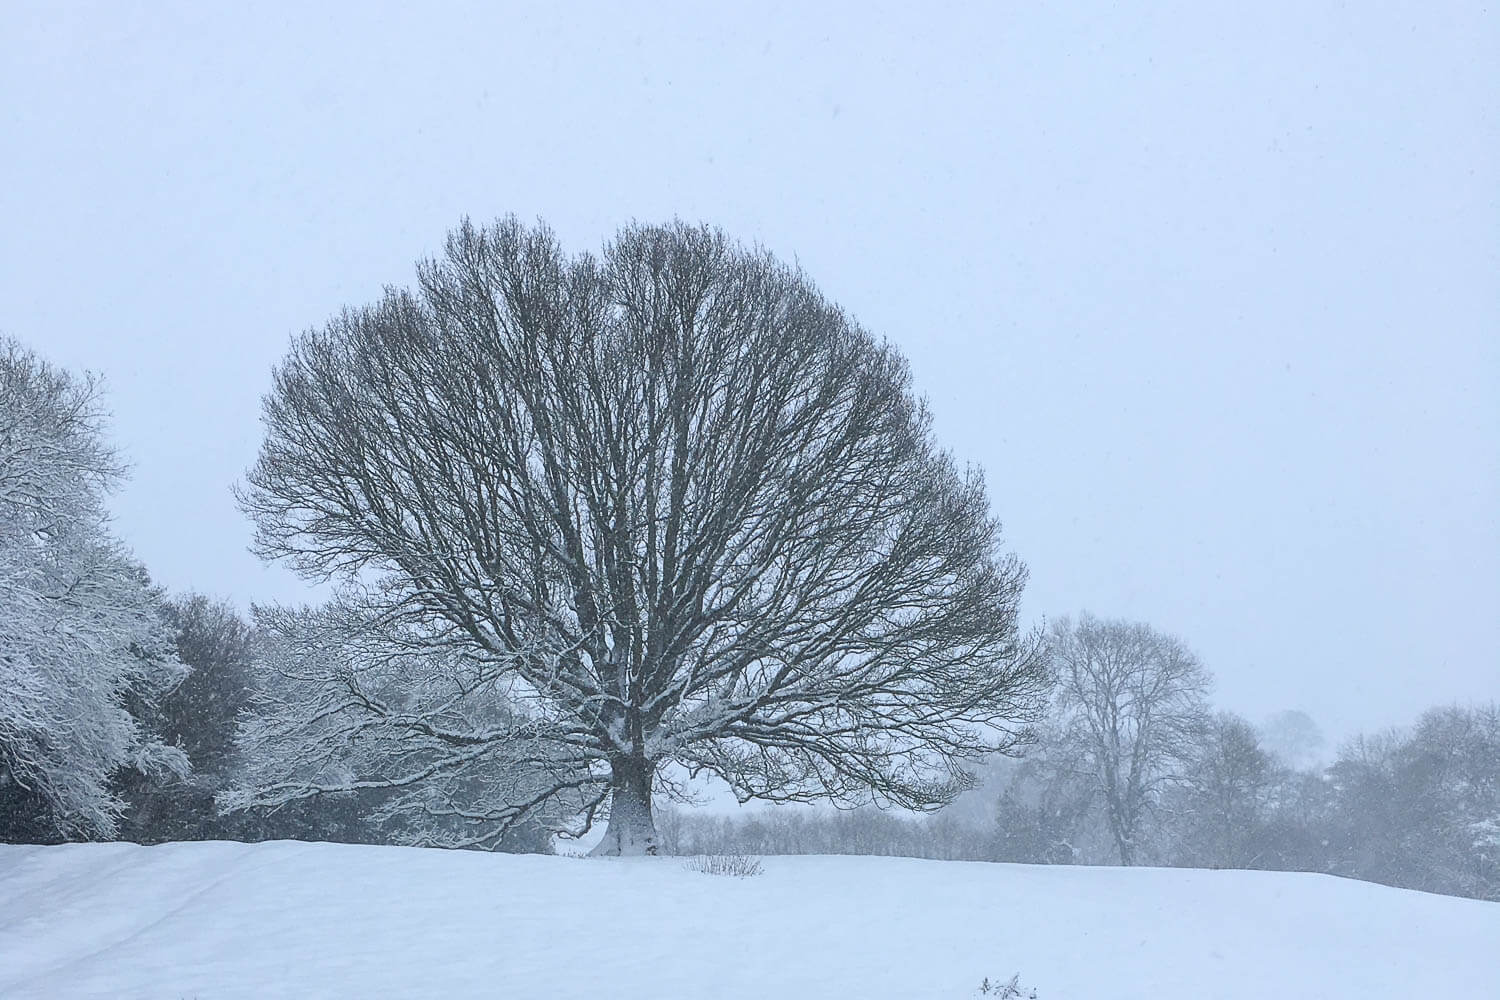 A lone tree in the middle of a field covered in snow